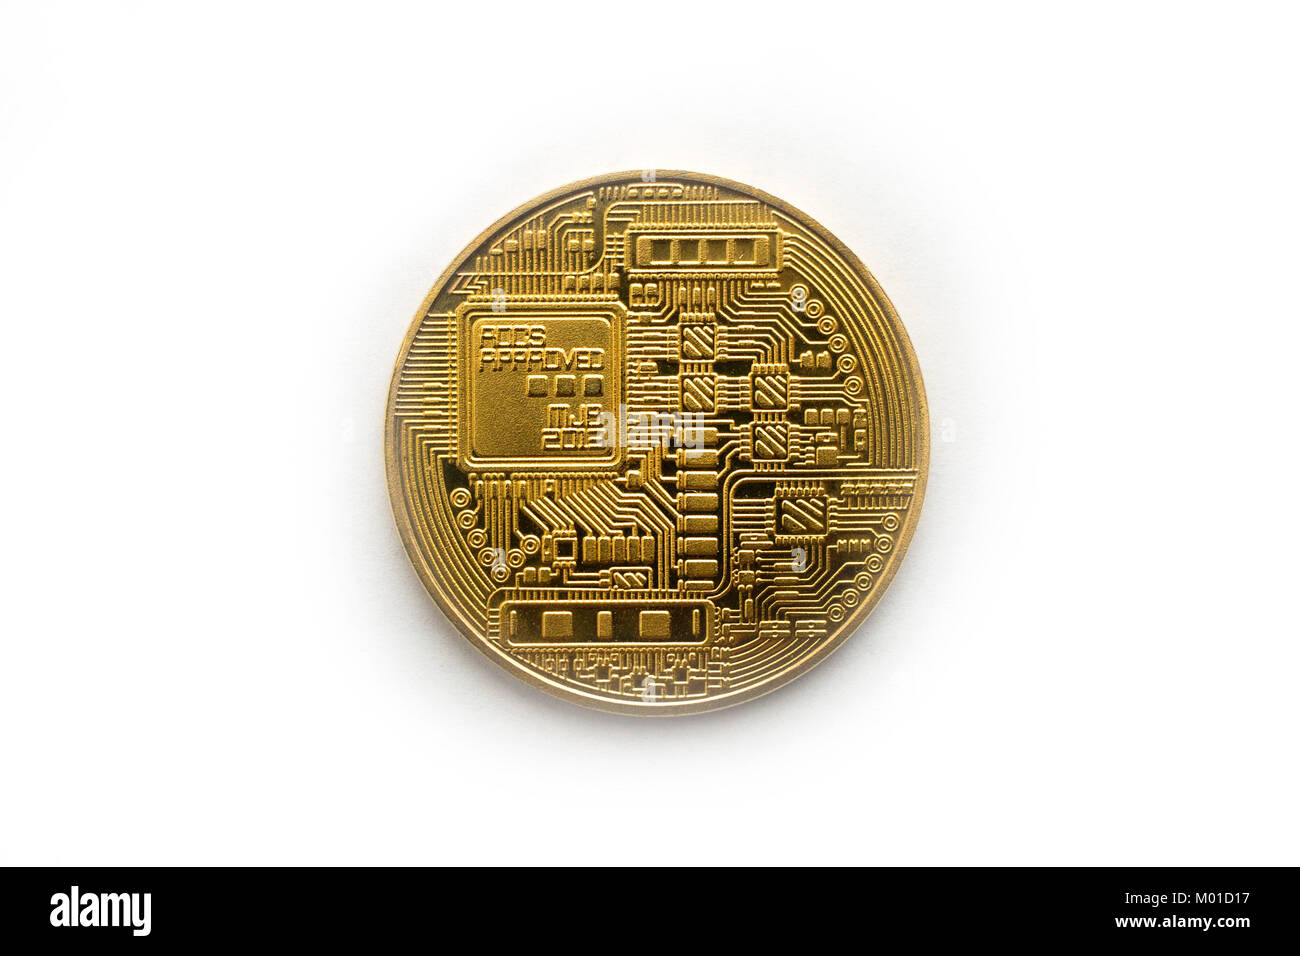 Single bitcoin back coin on white background stock photo 172135859 single bitcoin back coin on white background ccuart Images